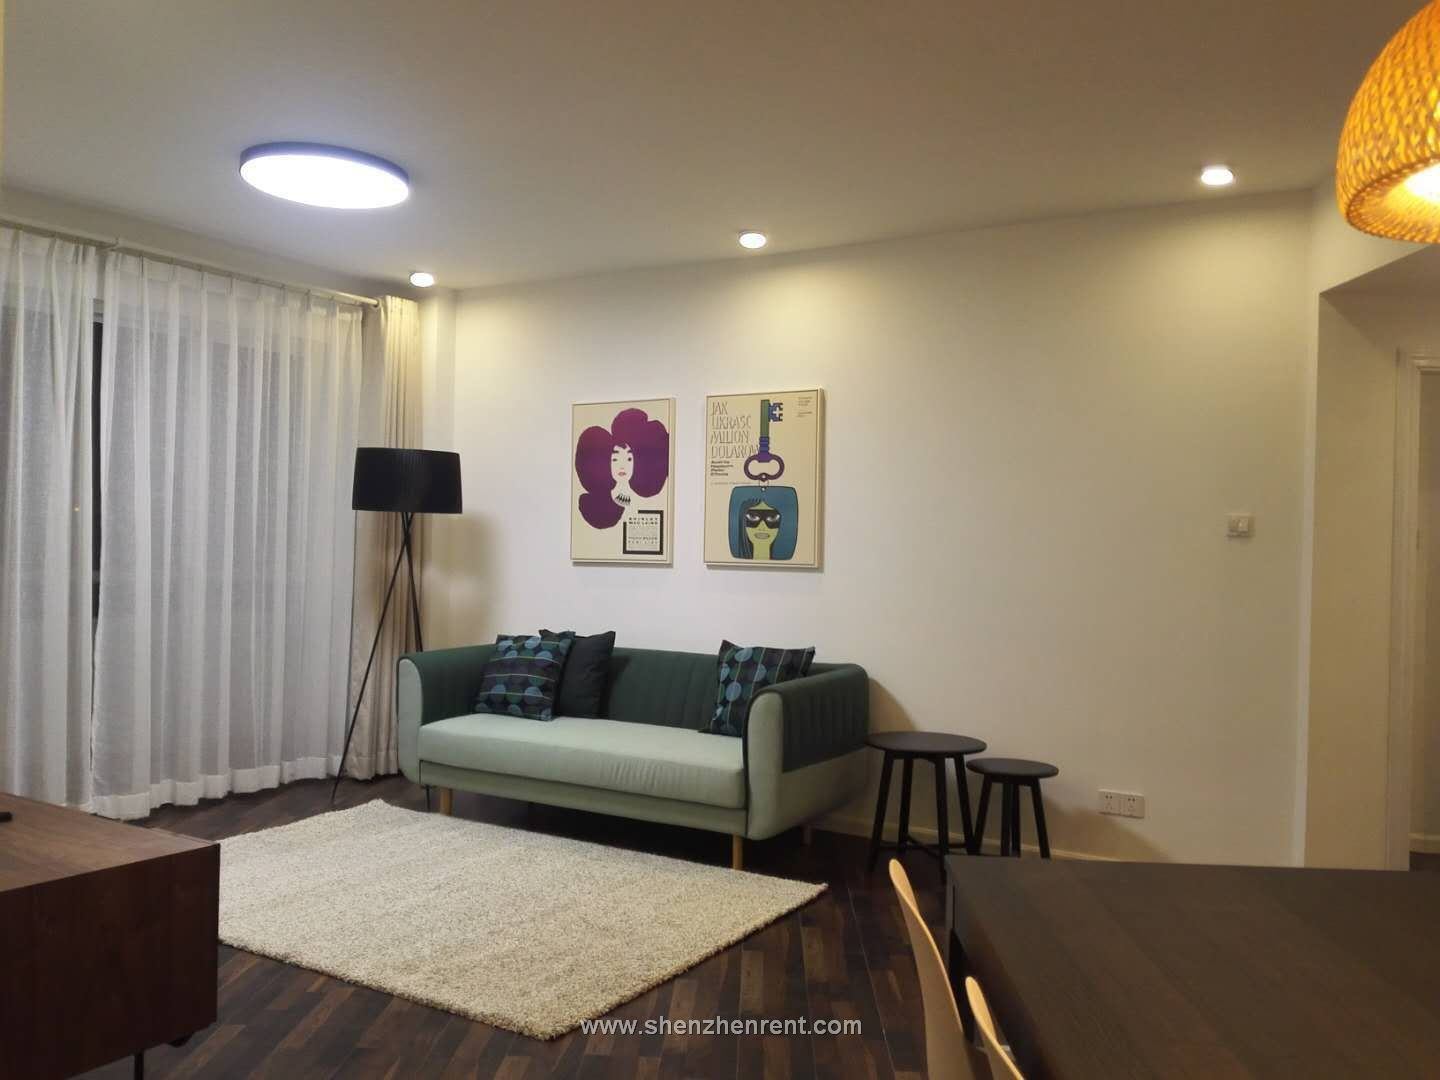 Newly renovated 3 bedrooms apartment in sea world for rent